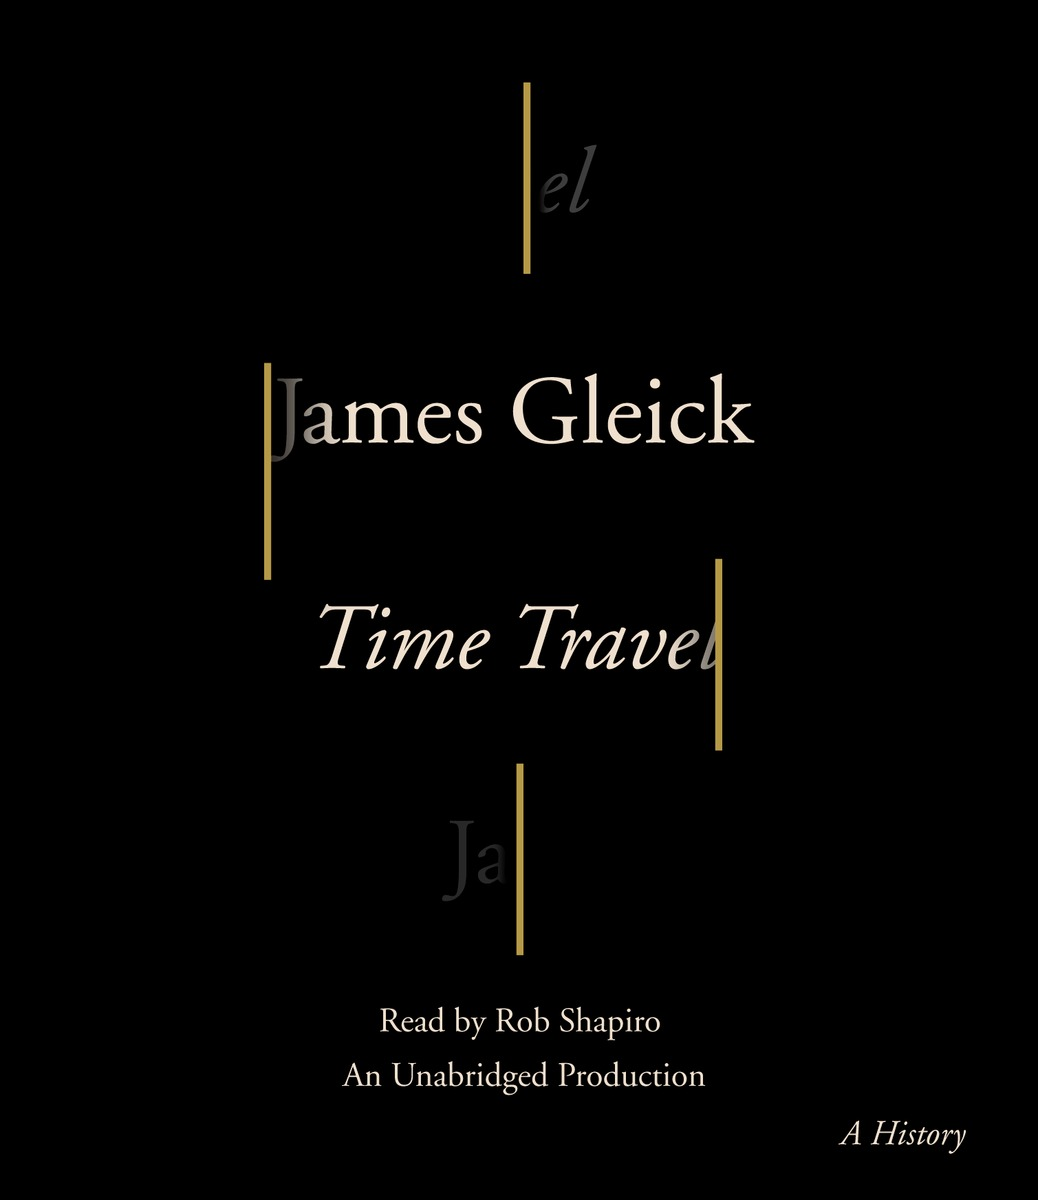 a summary of the story of time traveler Time travel paradoxes robert heinlein's 1941 story by his bootstraps begins with the narrator writing in a philosophy thesis that time travel is impossible because time, in immanuel kant's terms, is only empirically real and does not exist independently among things in themselves.